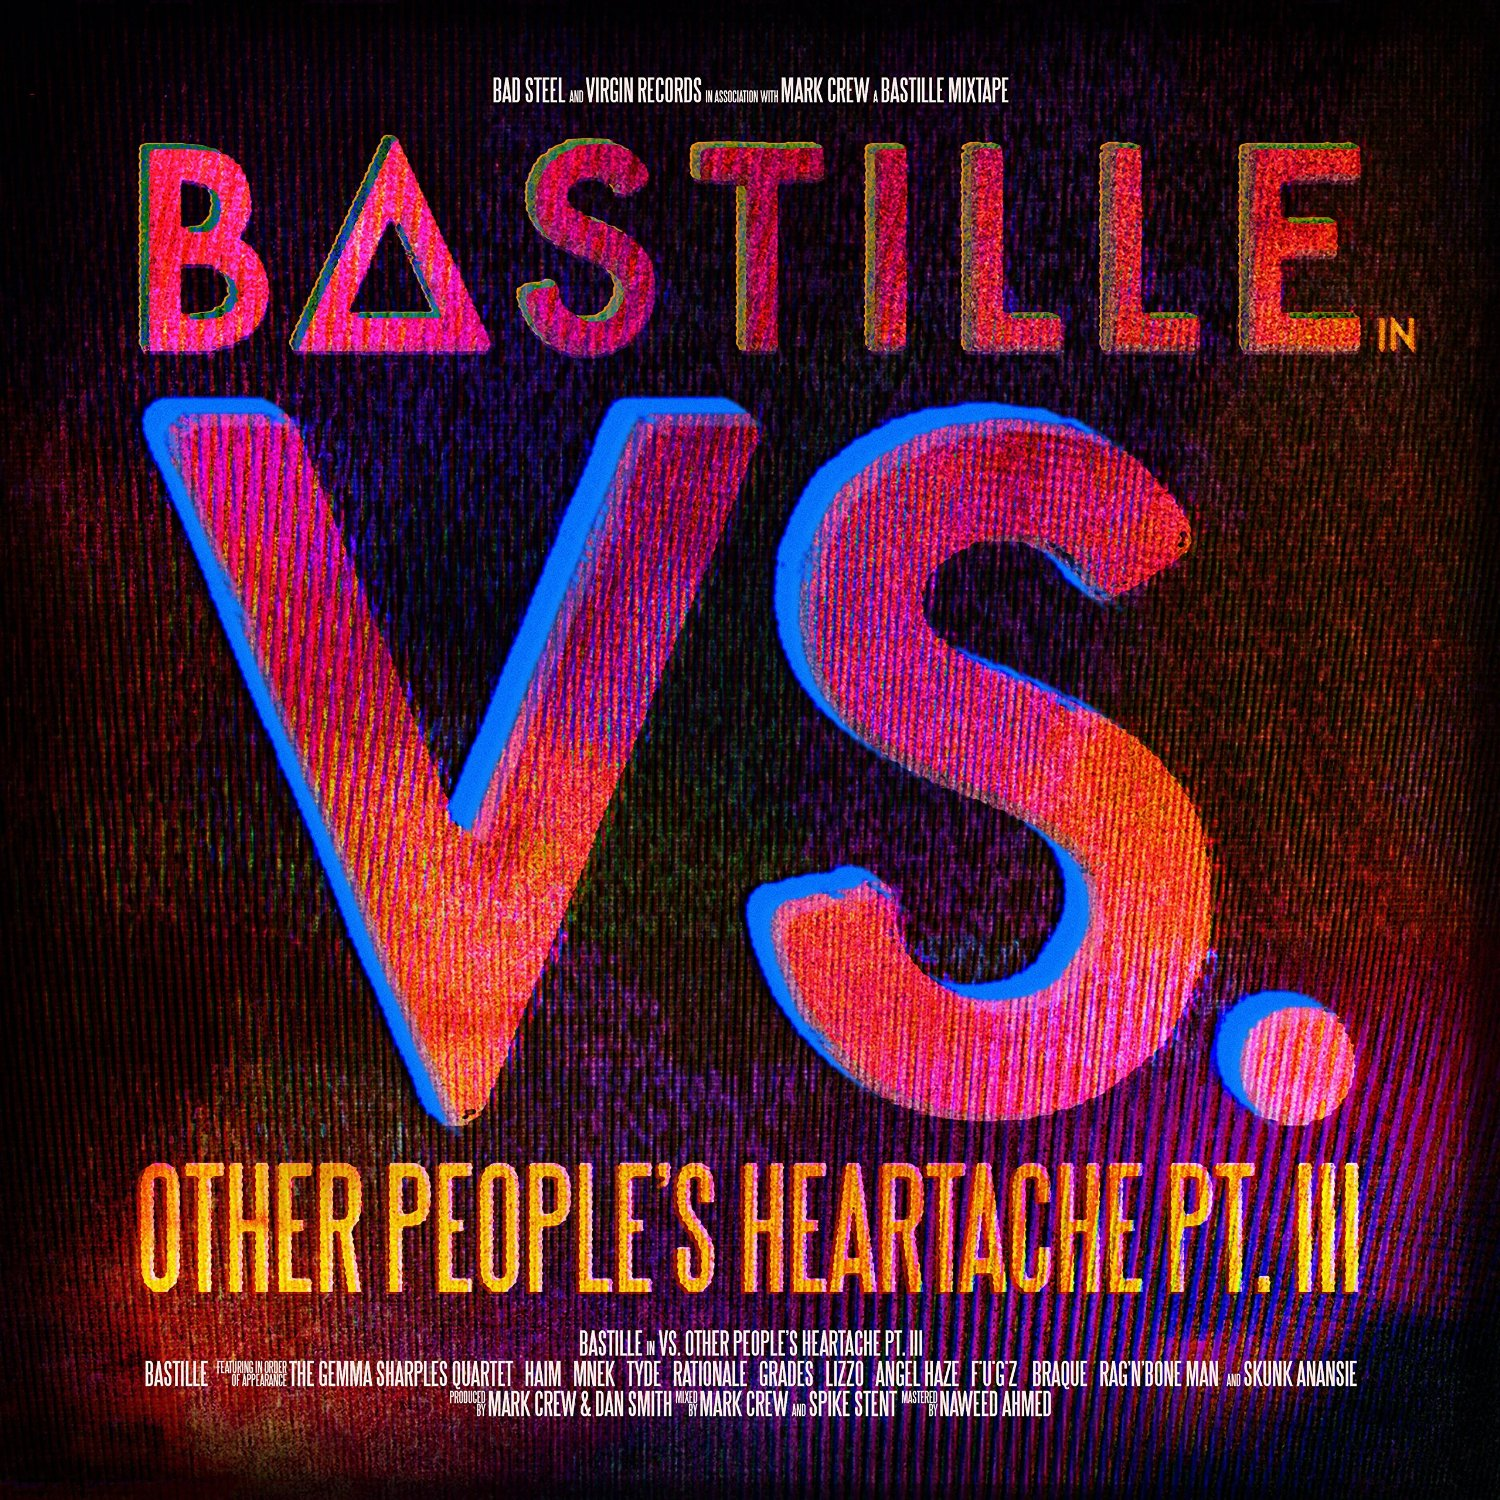 Bastille - Vs. (Other People's Heartache, Pt. III)  [RSD Drops 2021]